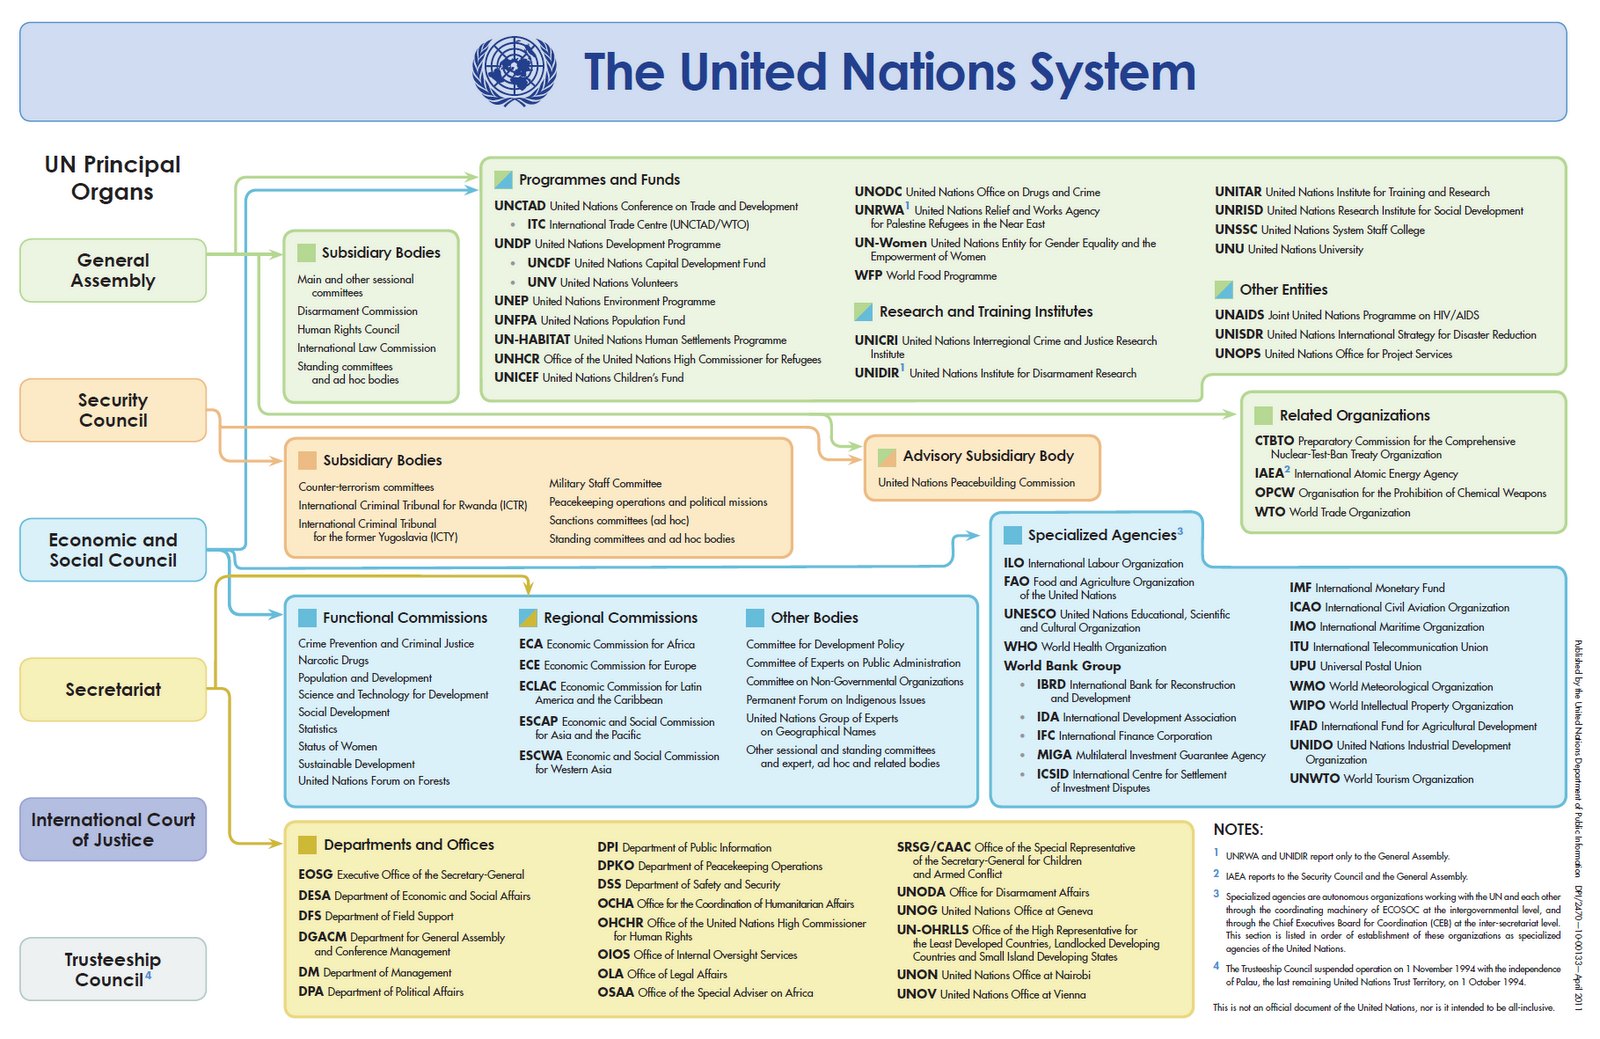 Visible Business The United Nations System Organizational Chart